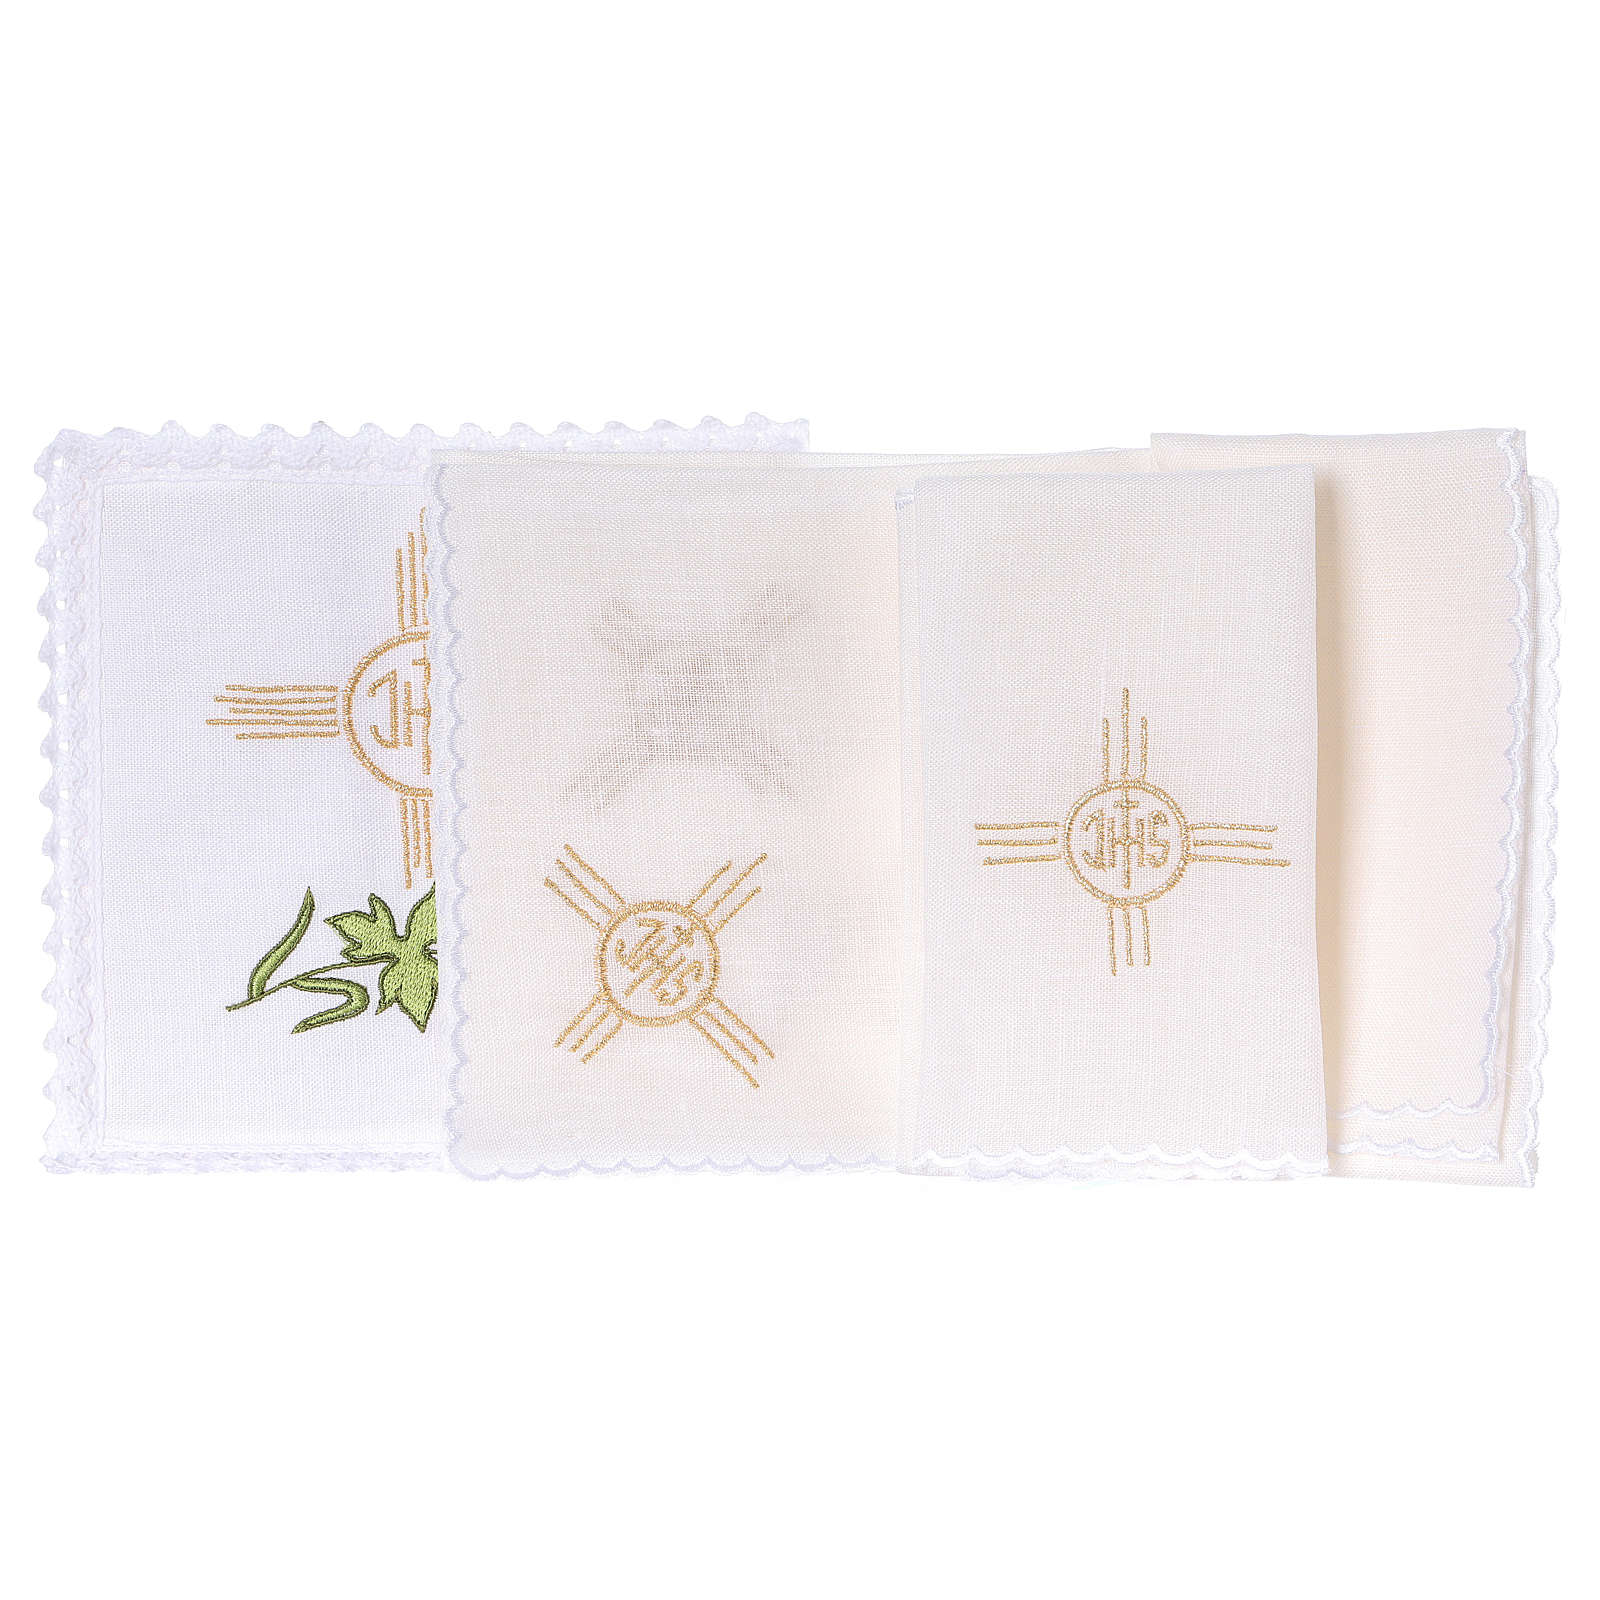 Altar linen spike grapes leaf JHS 4